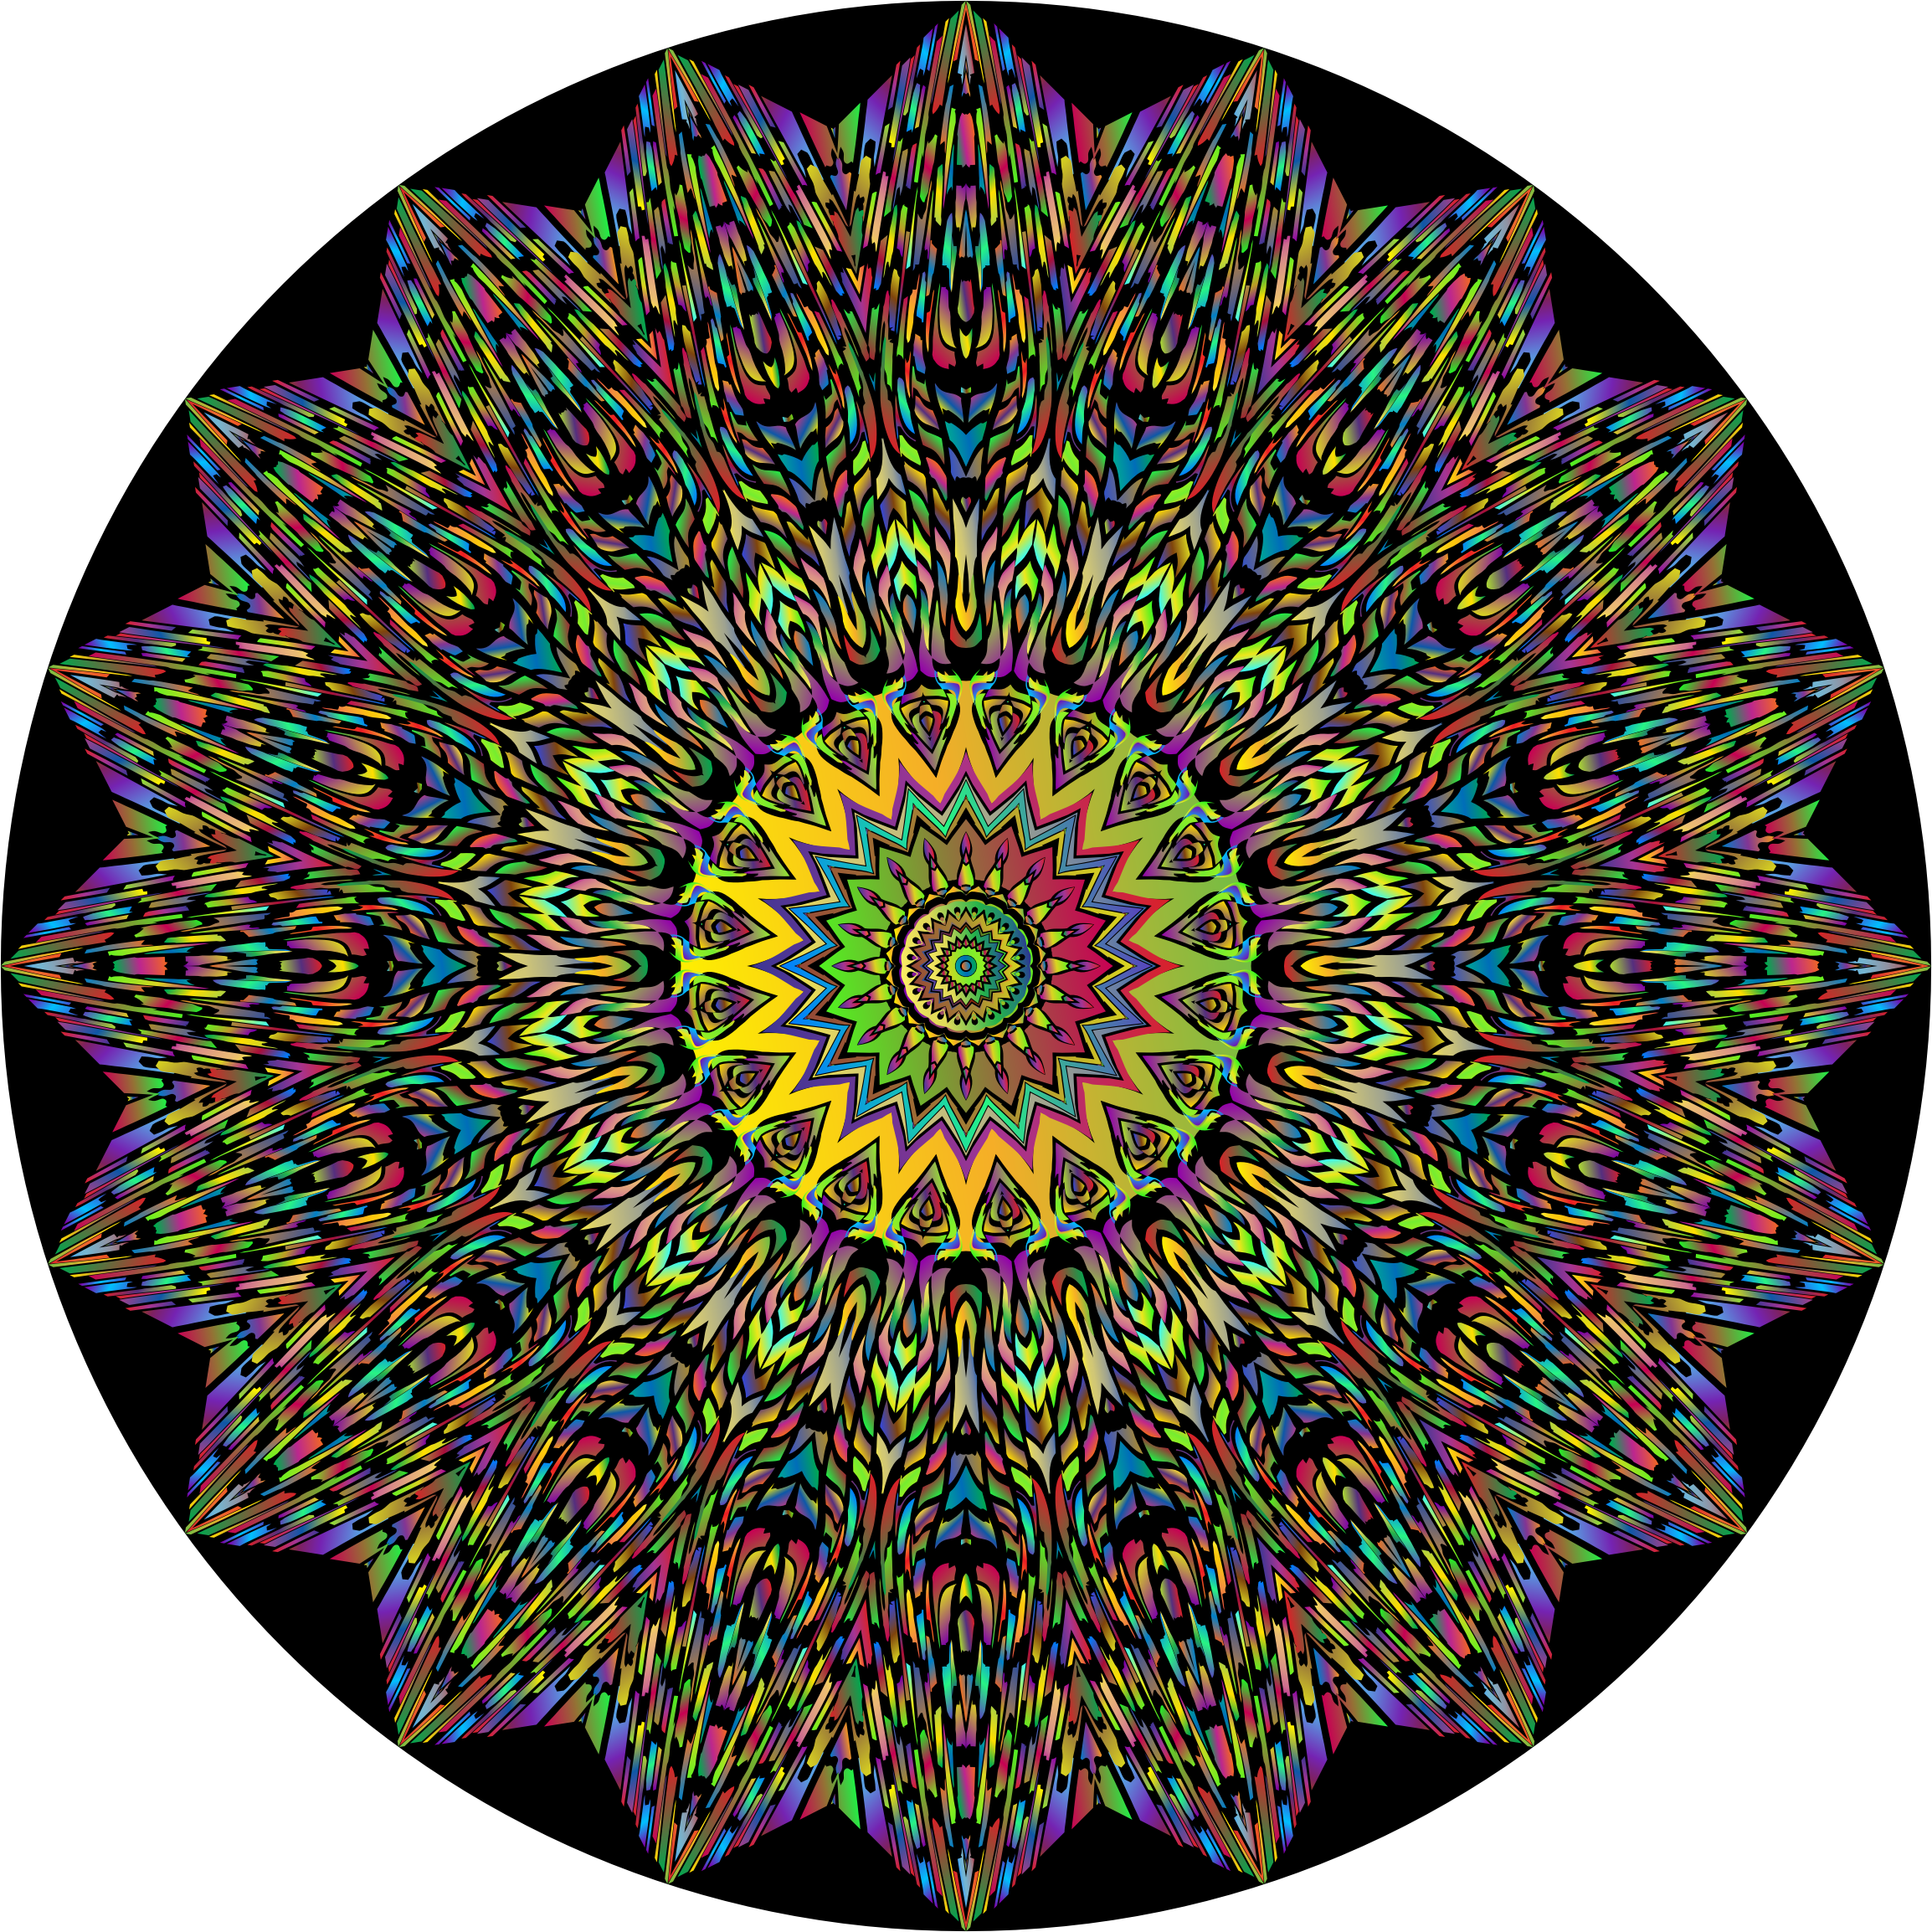 Trippy backgrounds png. Psychedelic mandala icons free